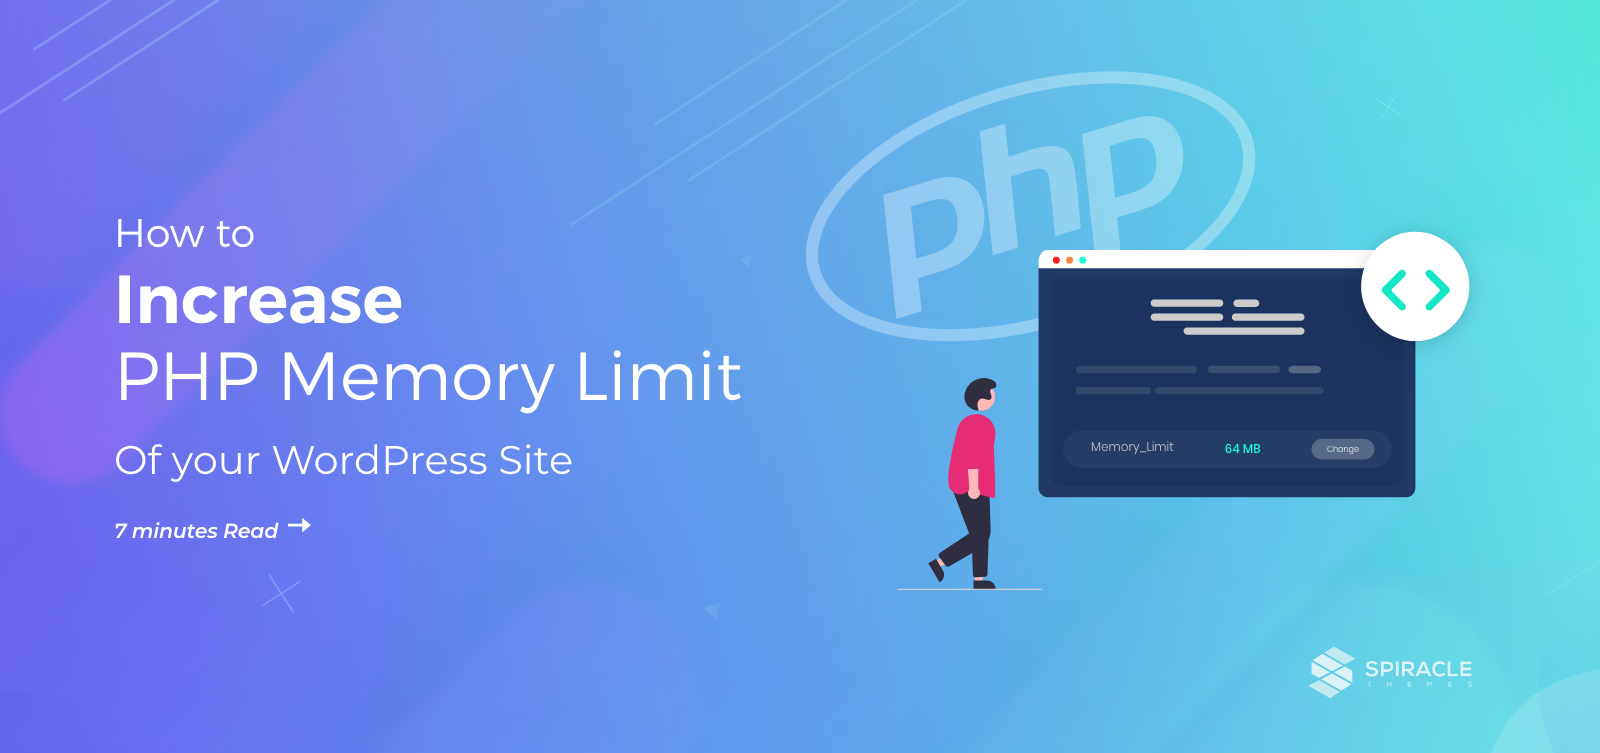 How to Increase PHP Memory Limit of Your WordPress Site